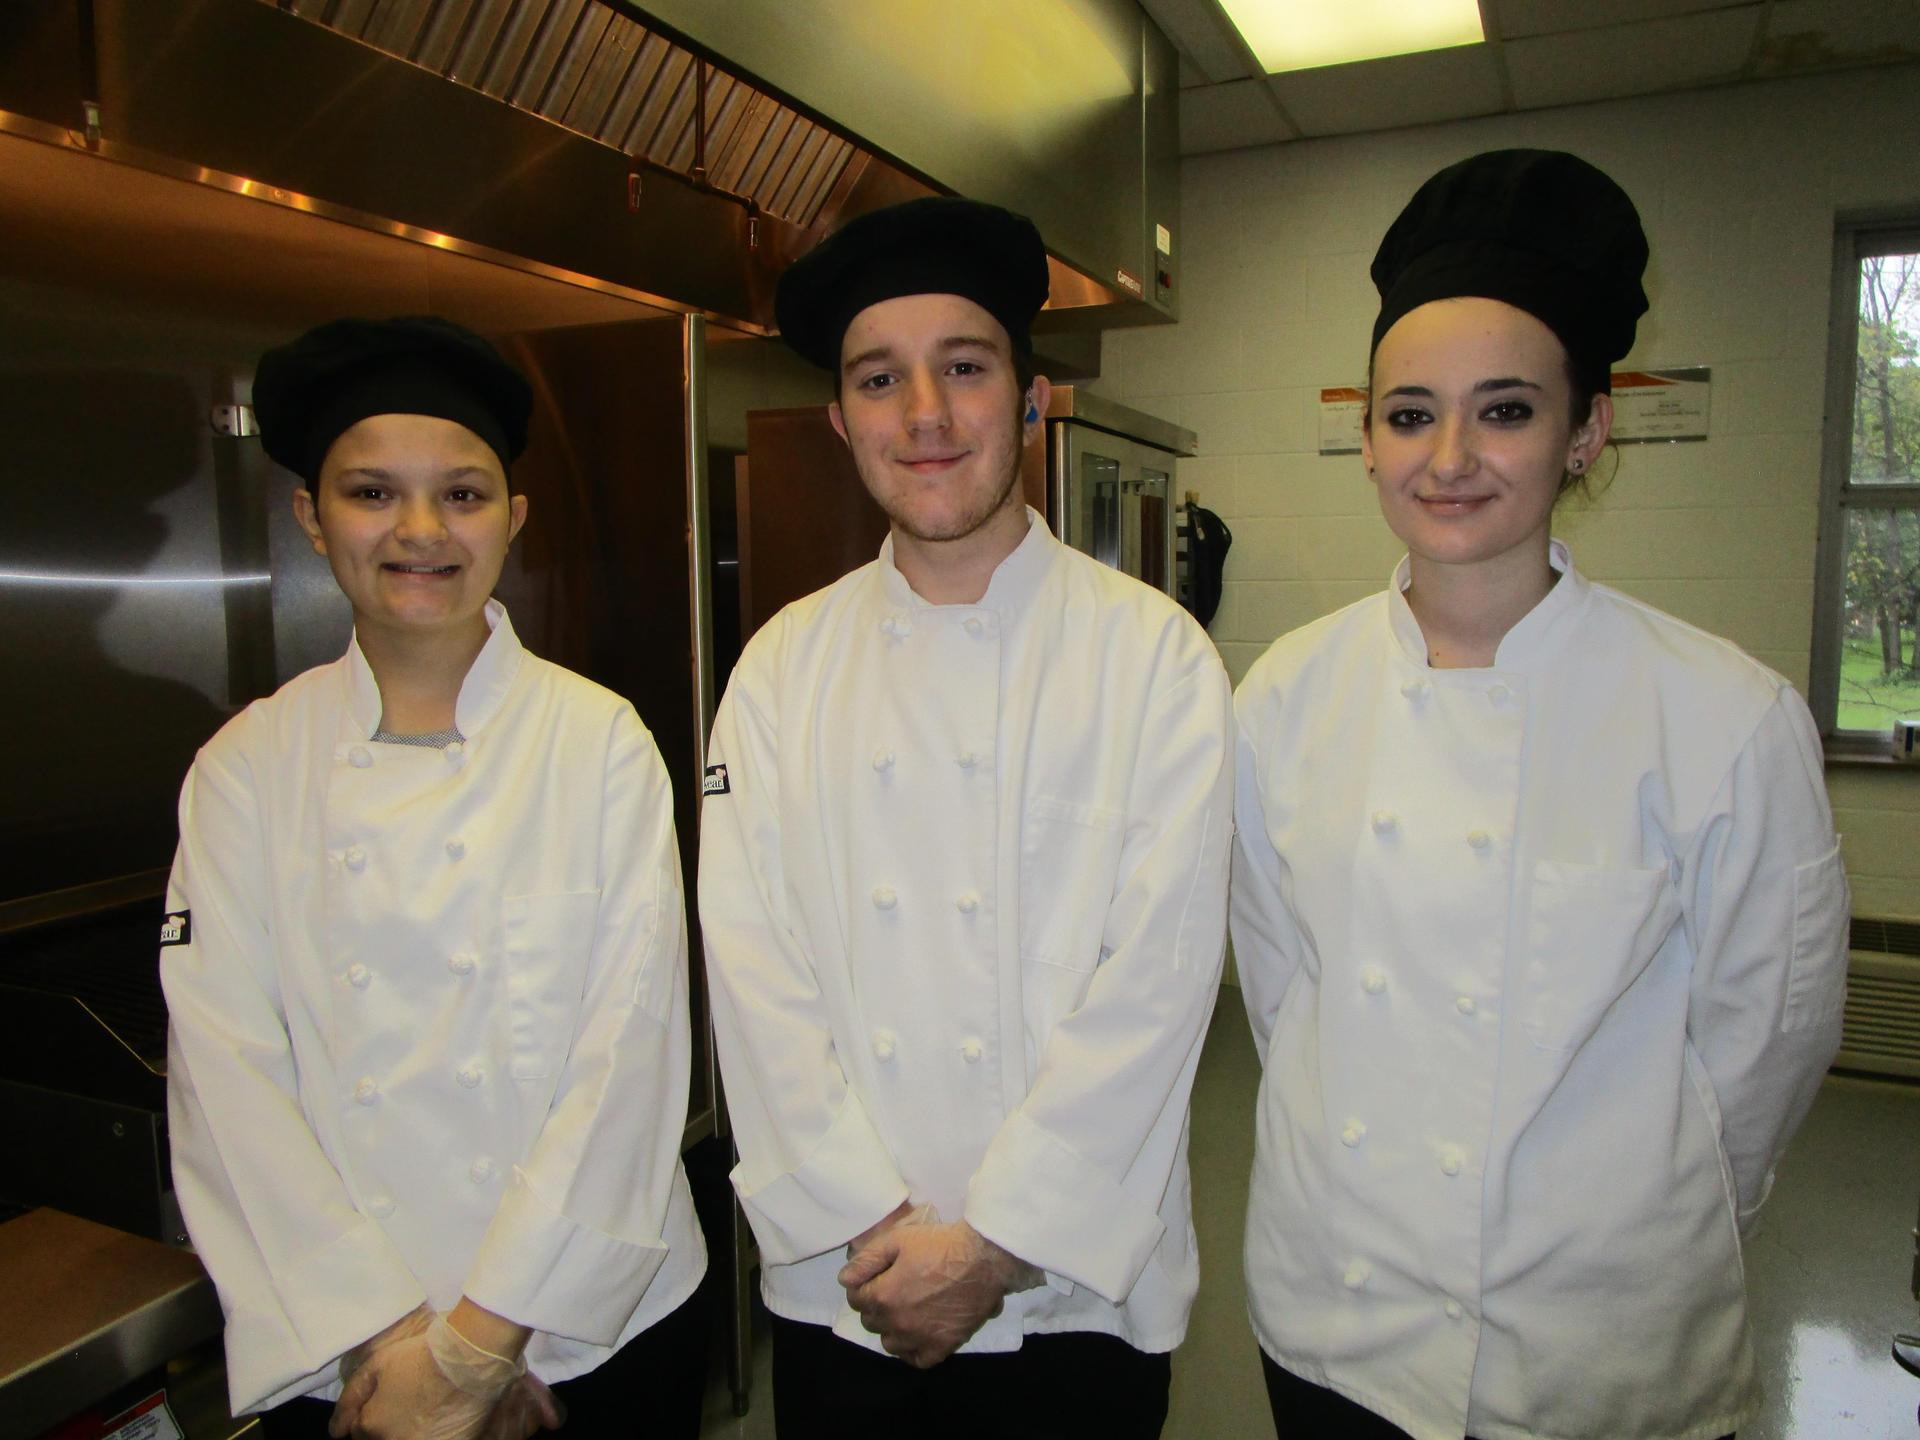 Three ProStart Students pose in their chef uniforms